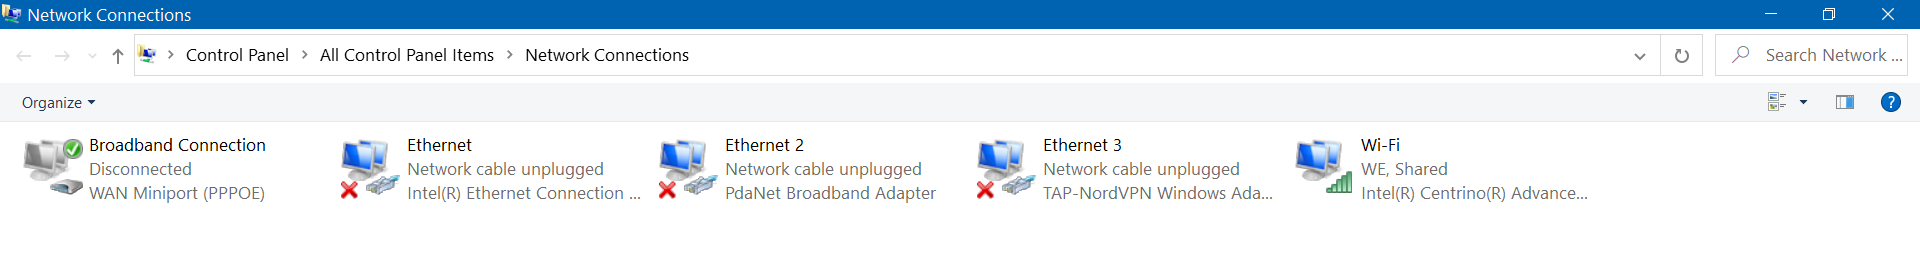 Windows 10 Cellular doesn't exist . I want to use my SIM card 29b325a4-0137-42ae-94ee-41bdb49eedfd?upload=true.png